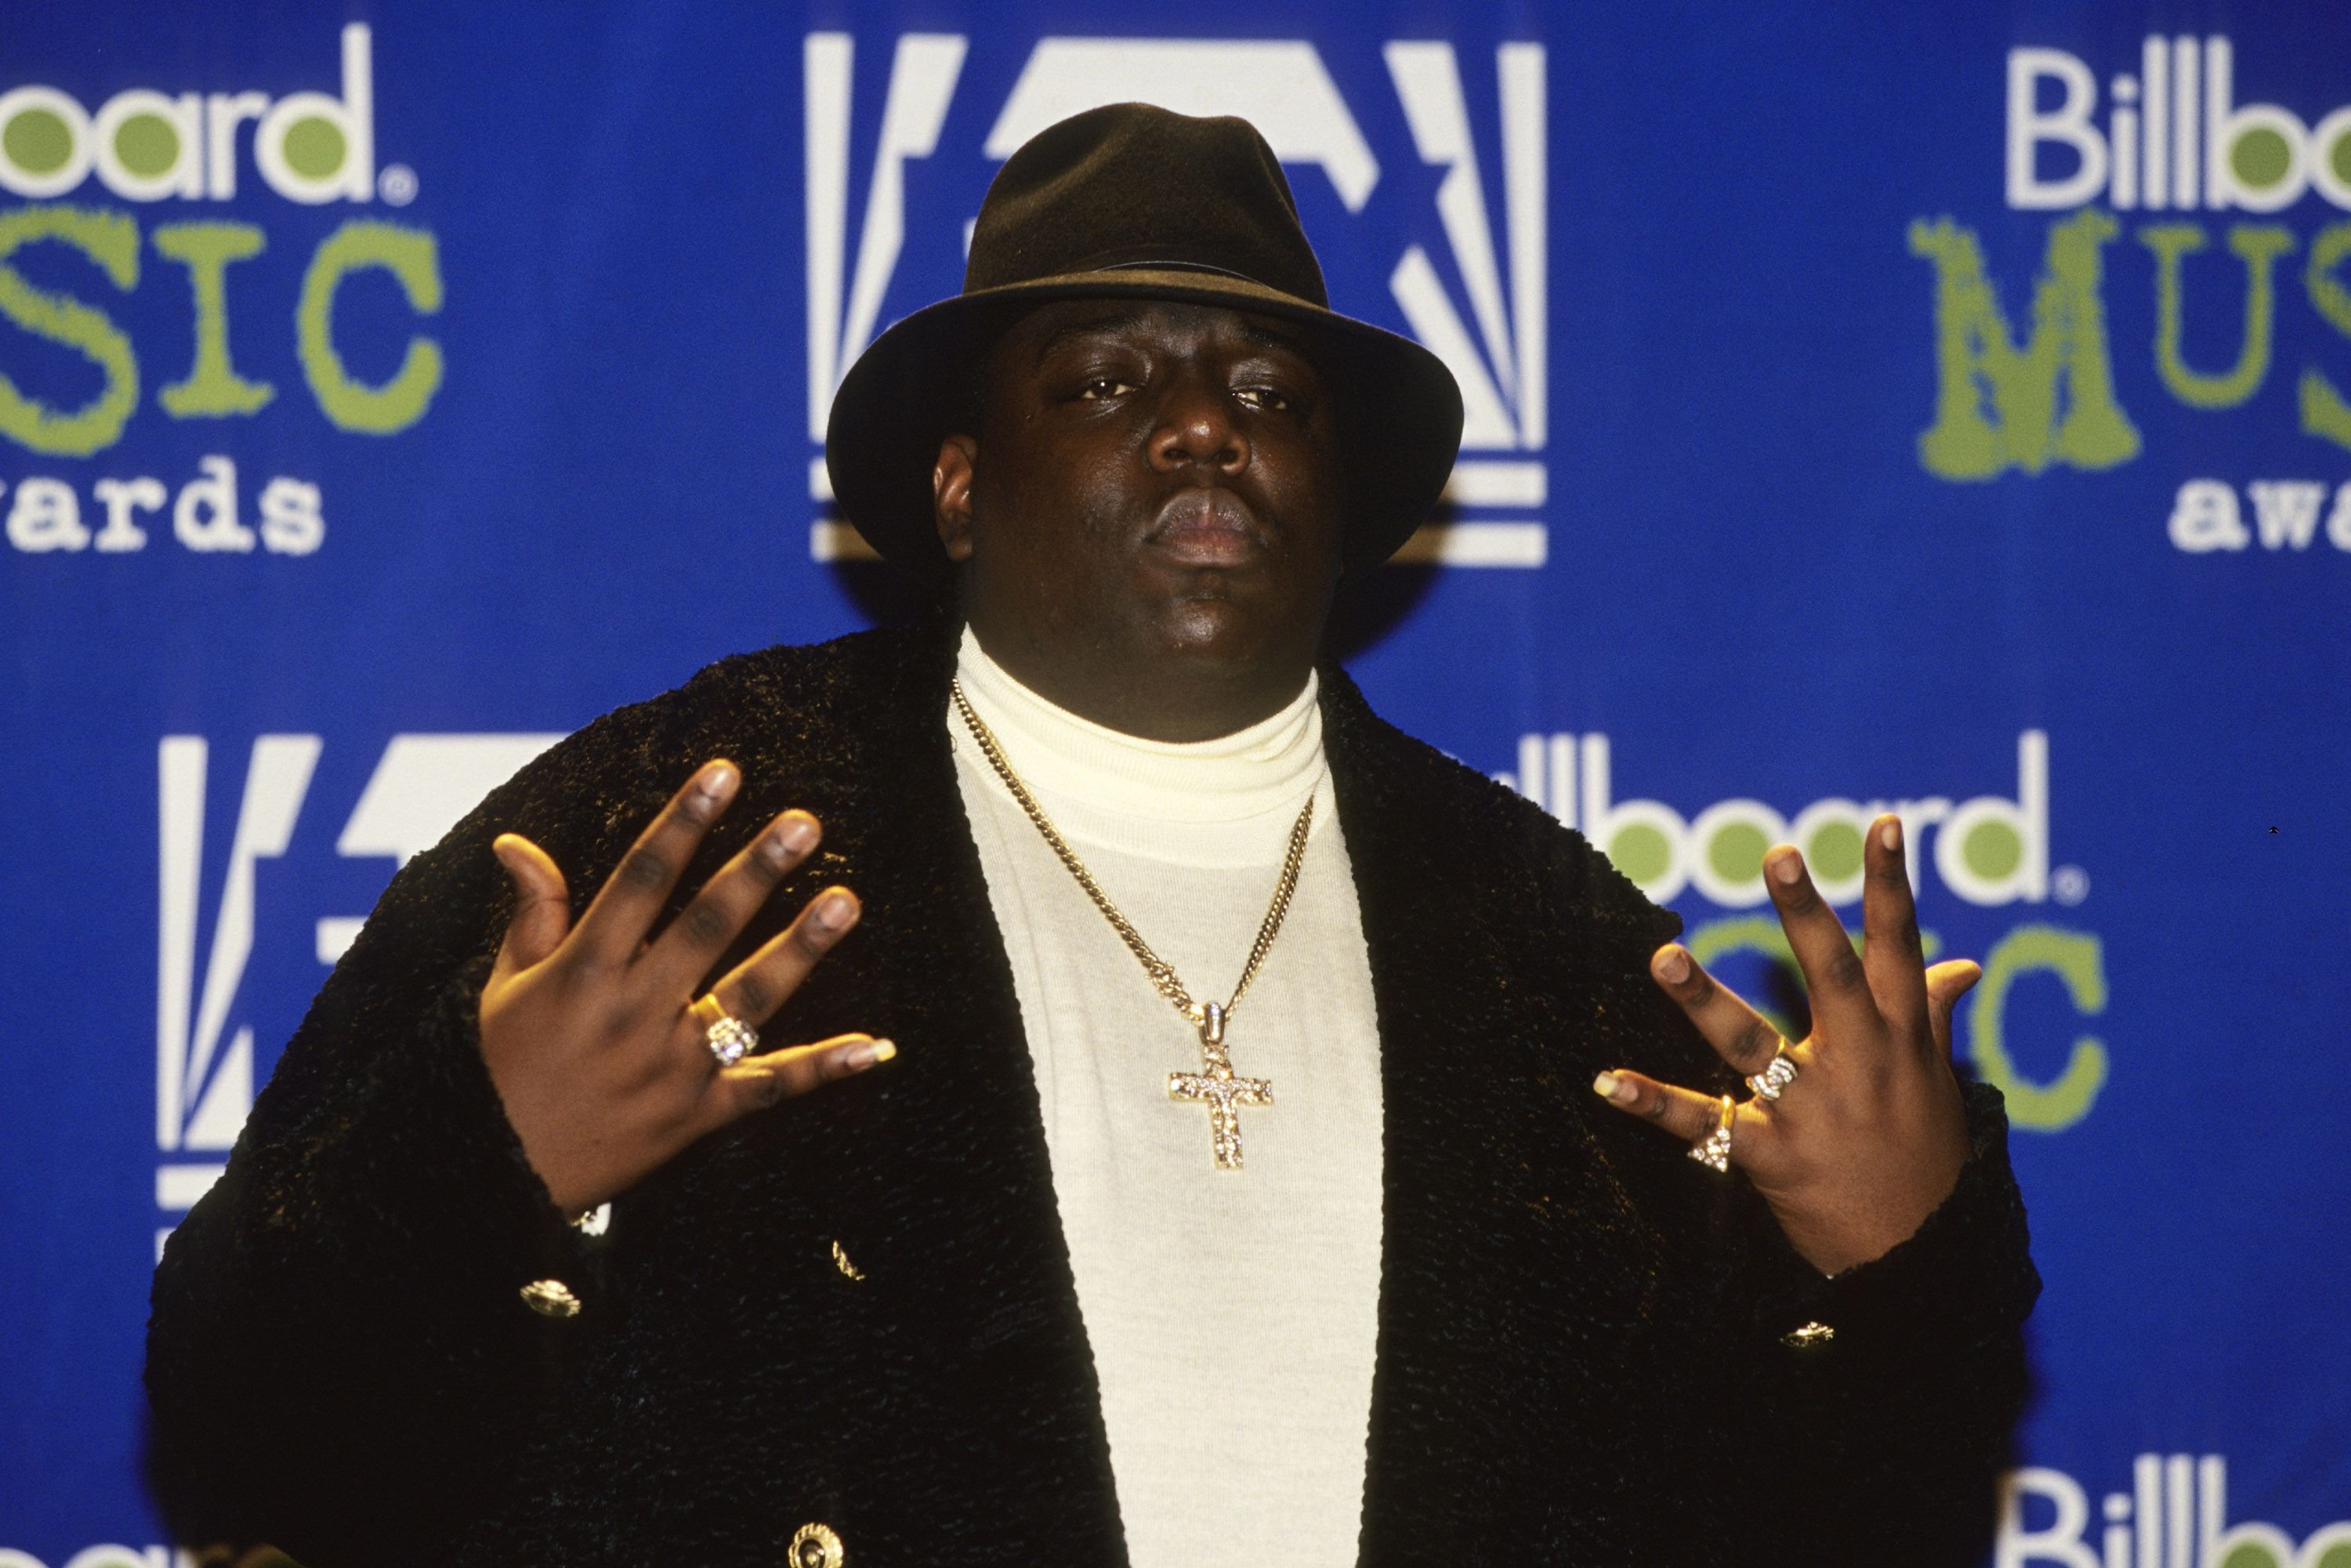 American rapper Notorious B.I.G. (born Christopher Wallace) at the 1995 Billboard Music Awards on December 6, 1996. | Photo: Getty Images